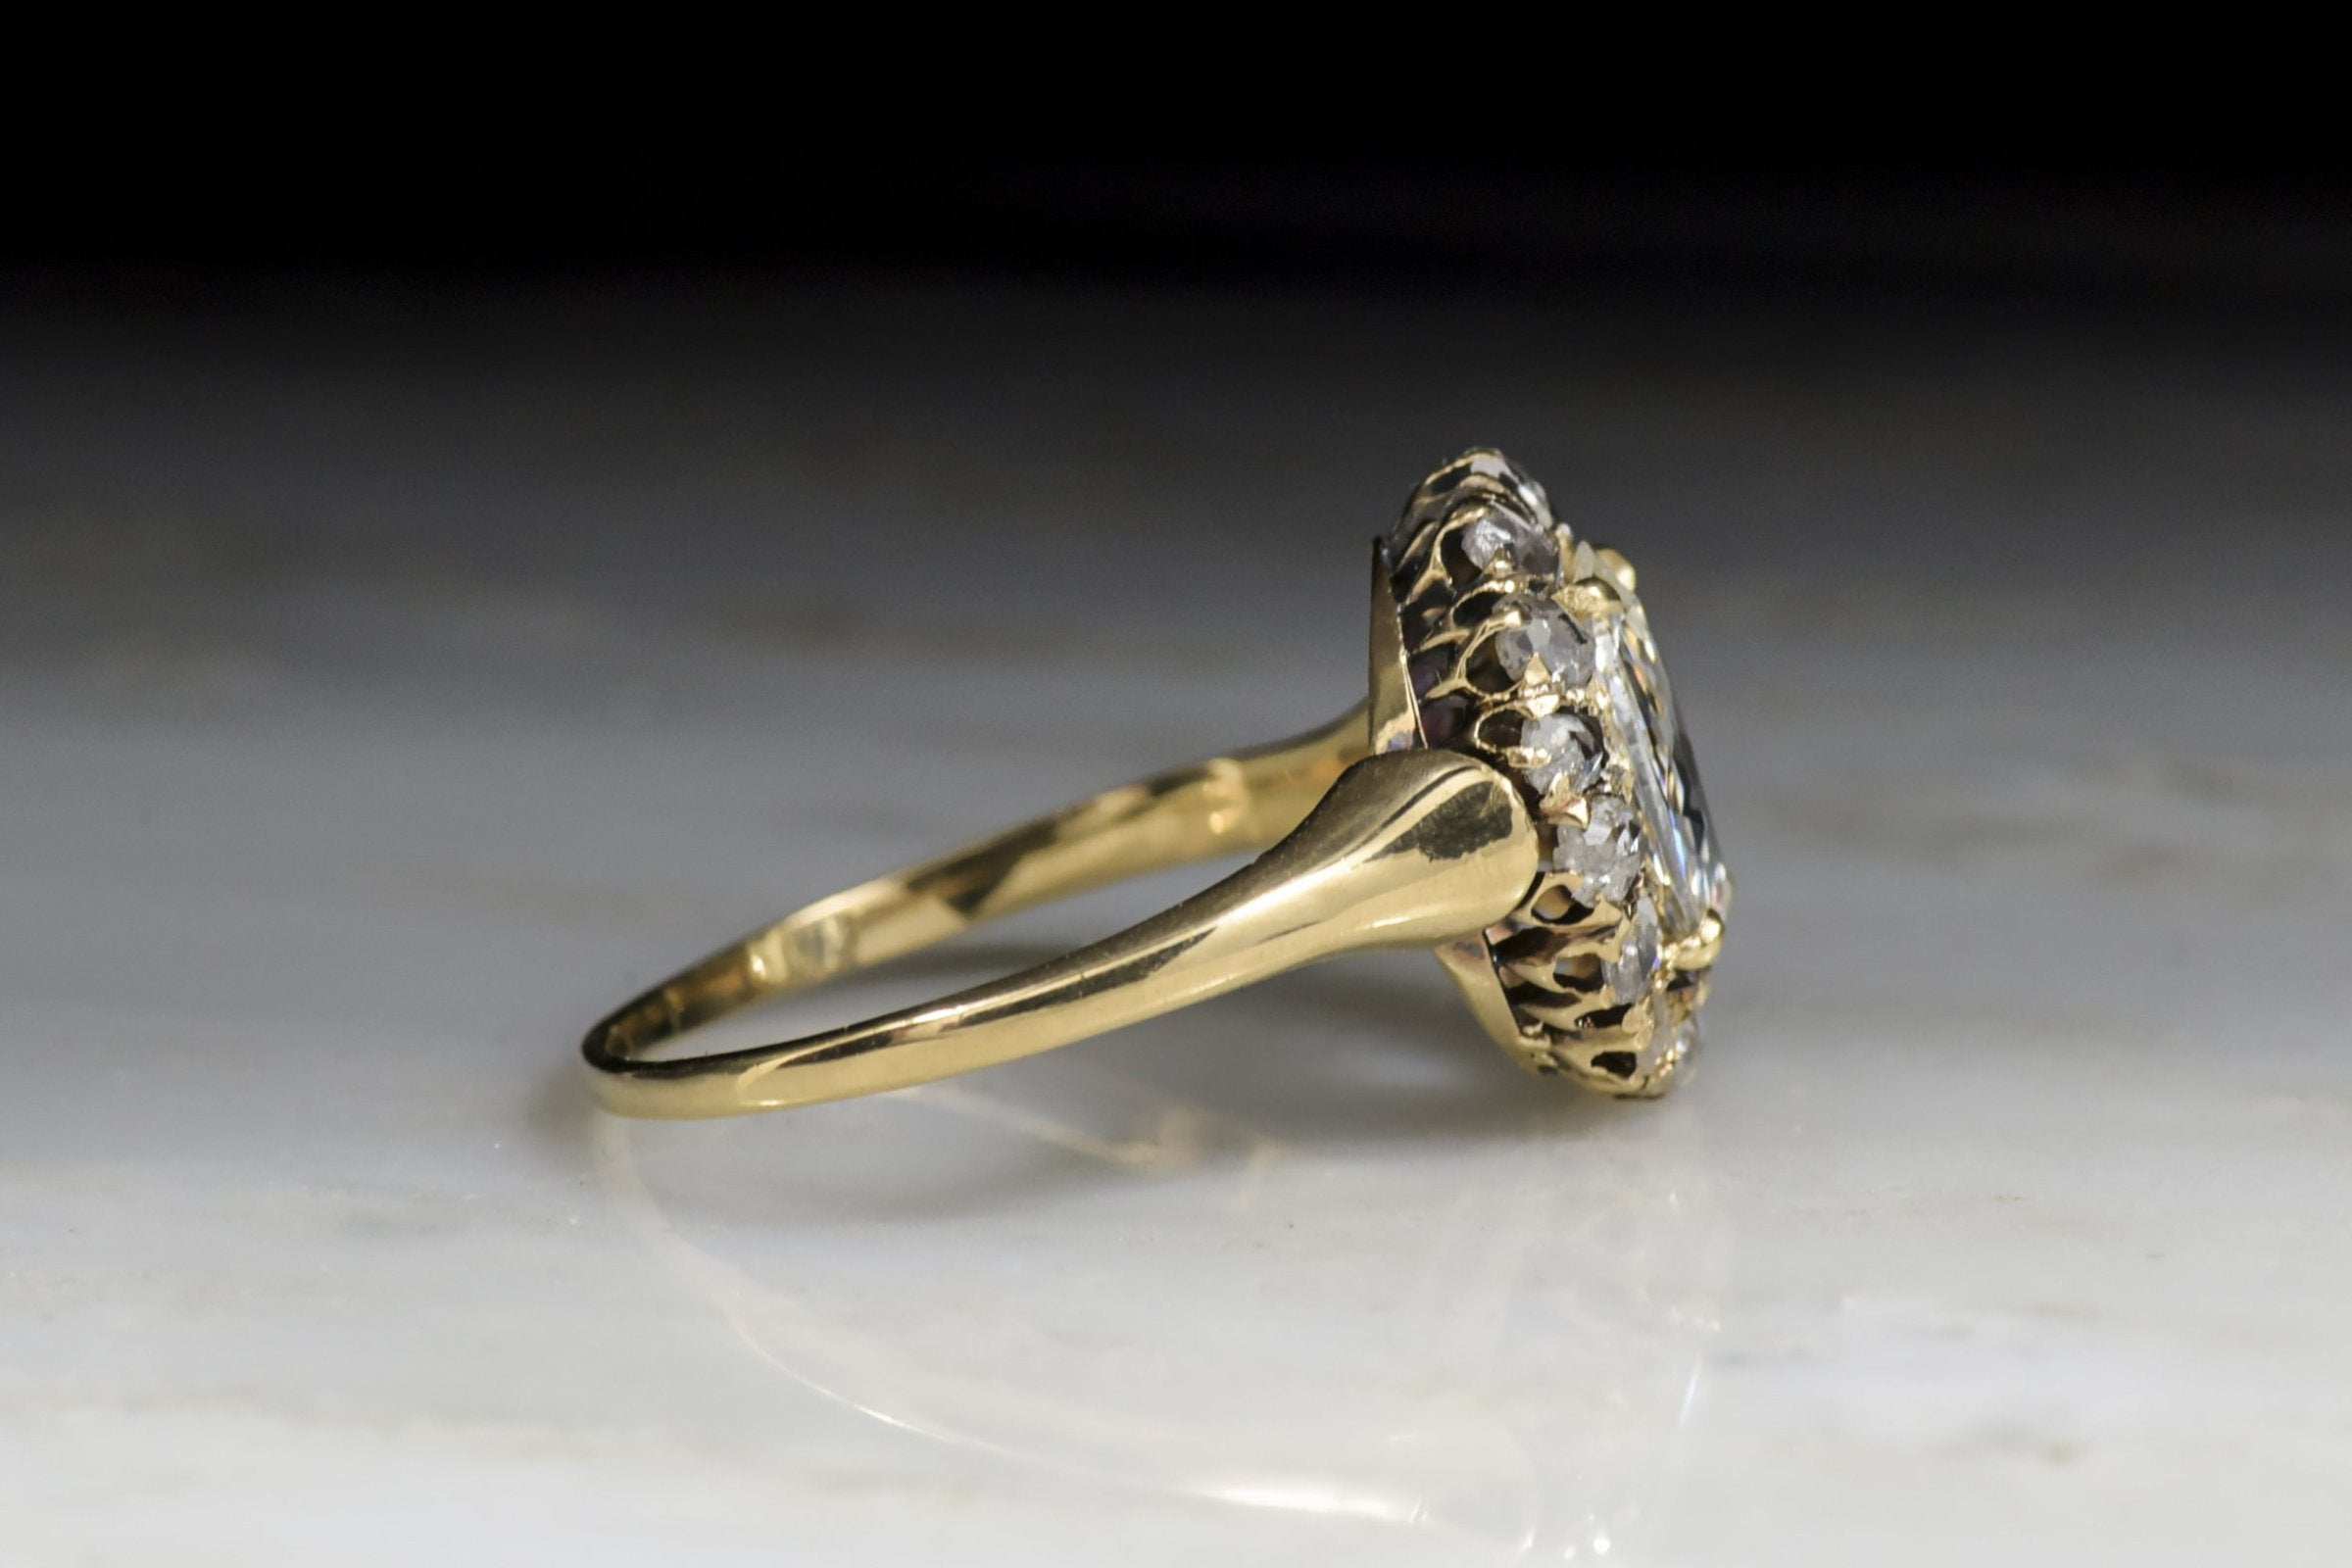 RESERVED Antique Victorian Engagement Ring with 1 35 Carat Old